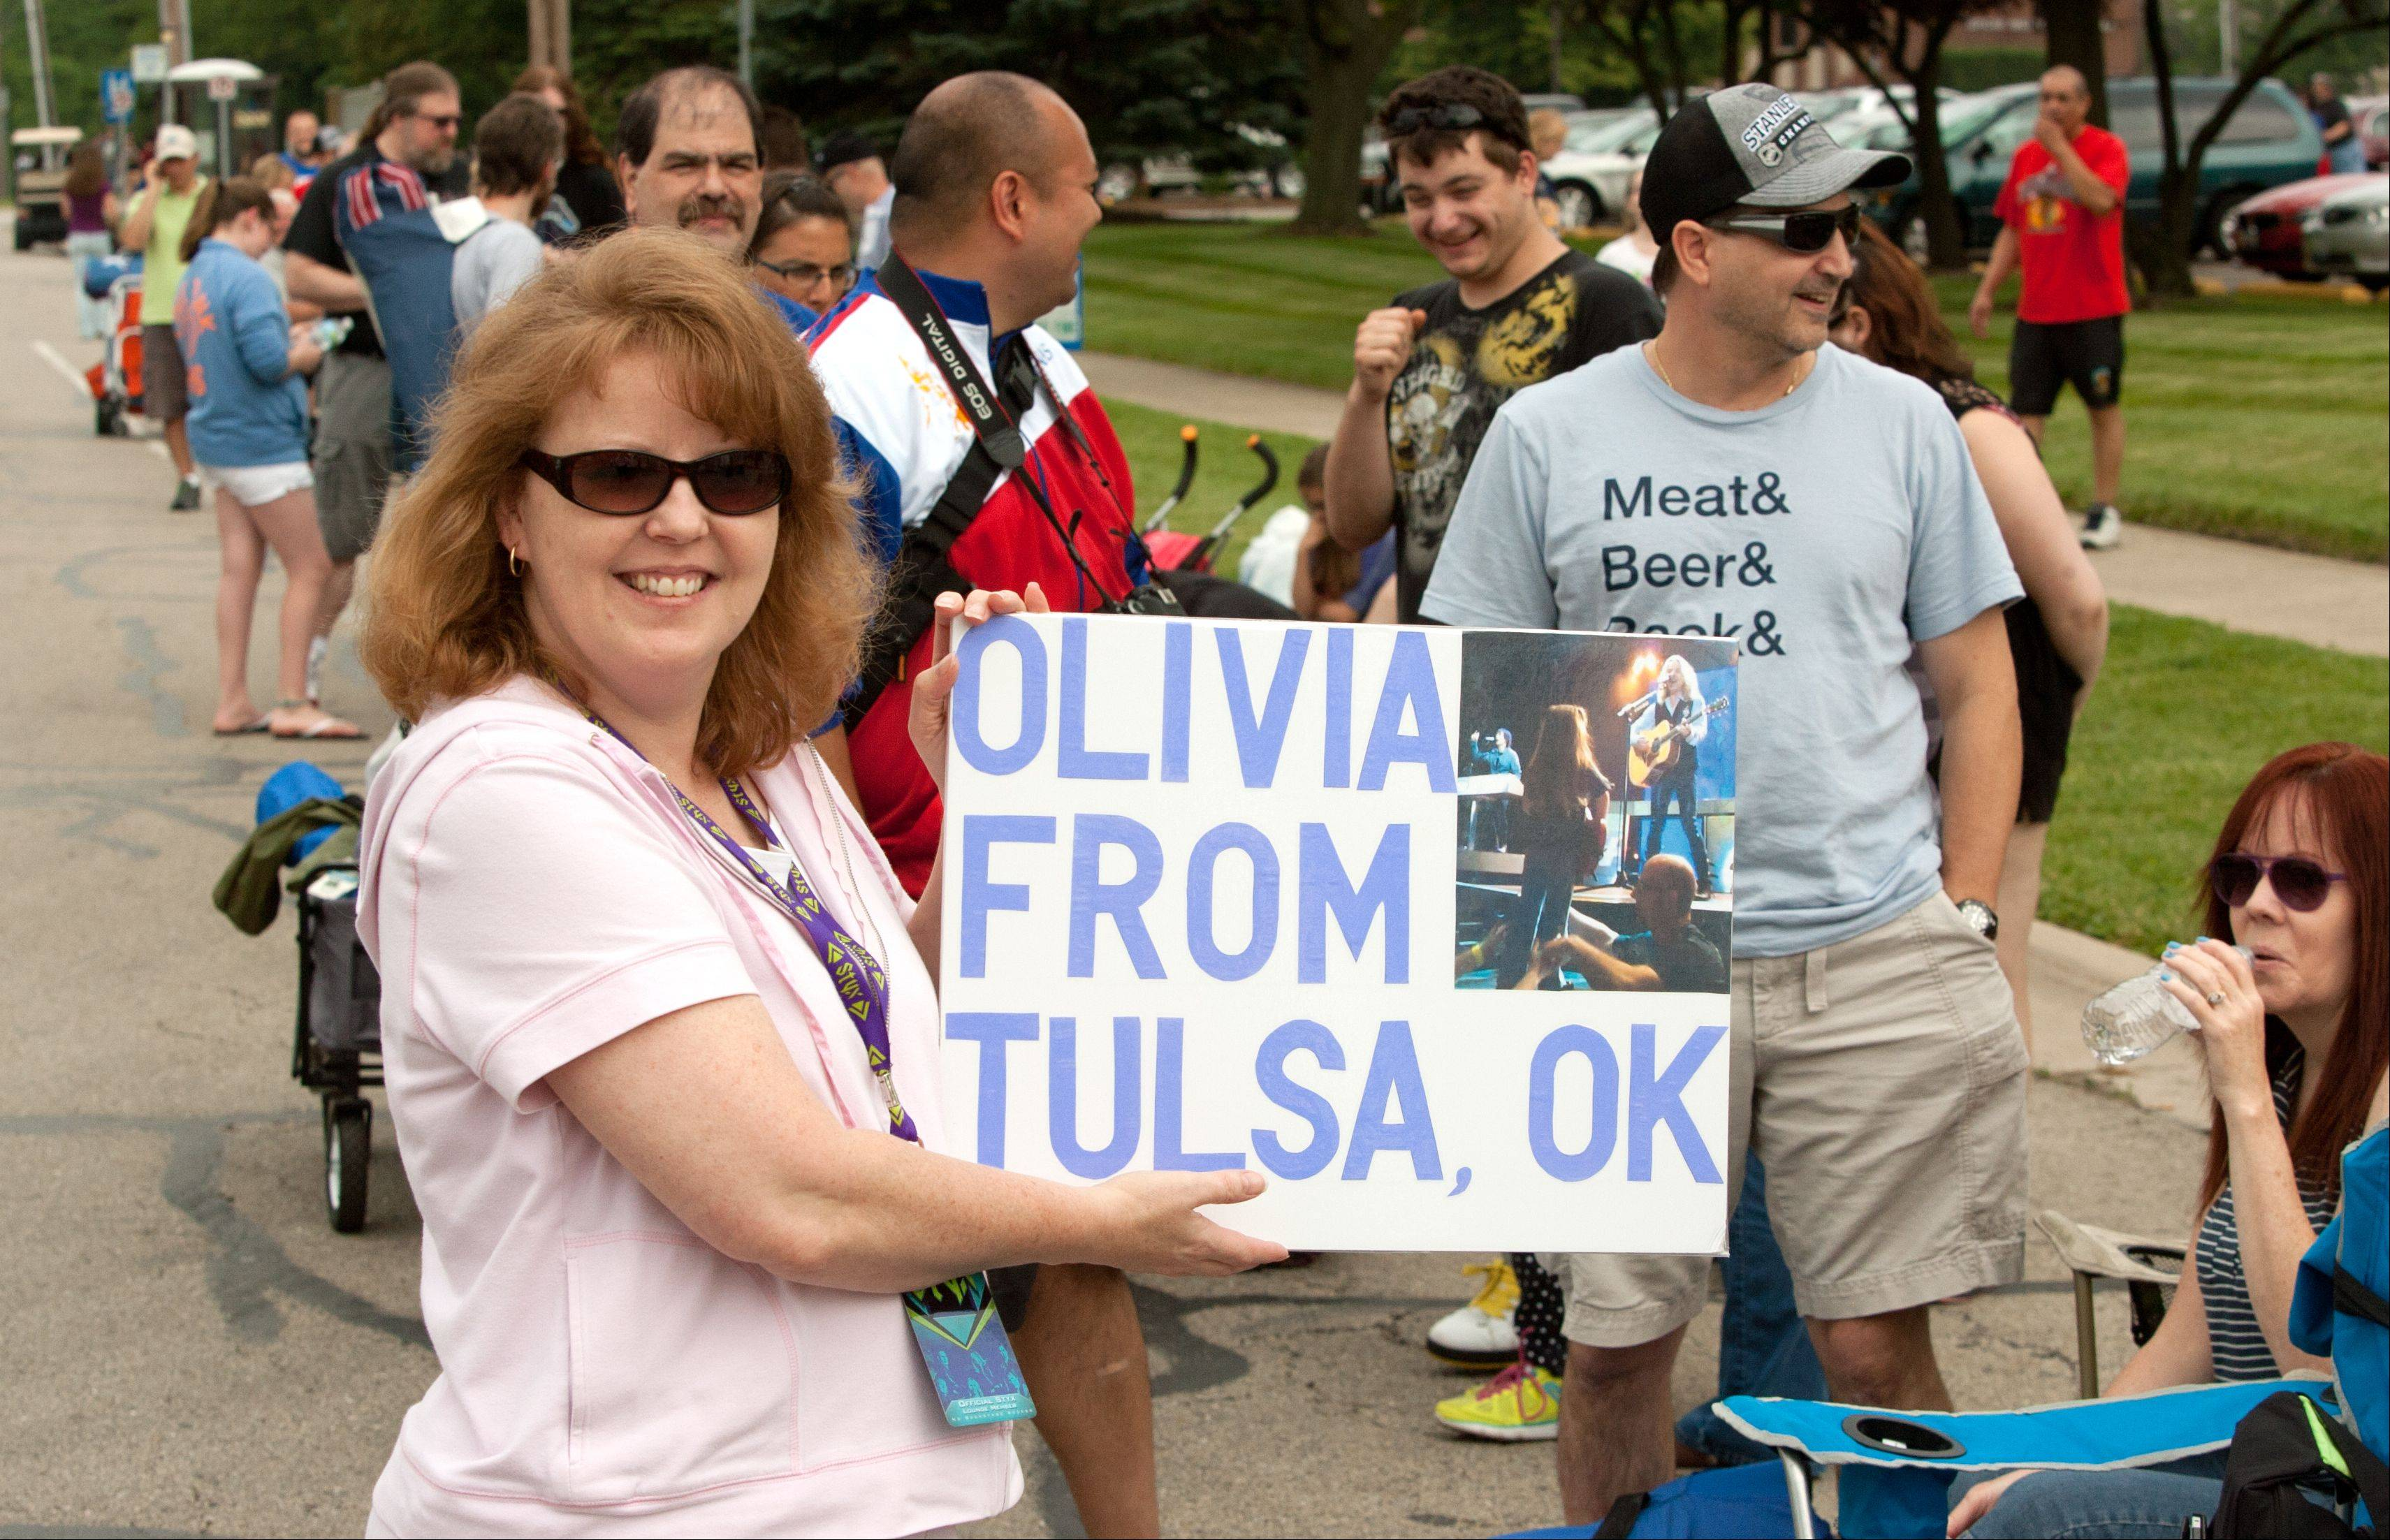 Melony Birt of Tulsa, Okla., stakes out the first spot in line at Ribfest's east gate Wednesday afternoon in Naperville as she waits to celebrate her daughter Olivia's 4th birthday at the Styx concert.